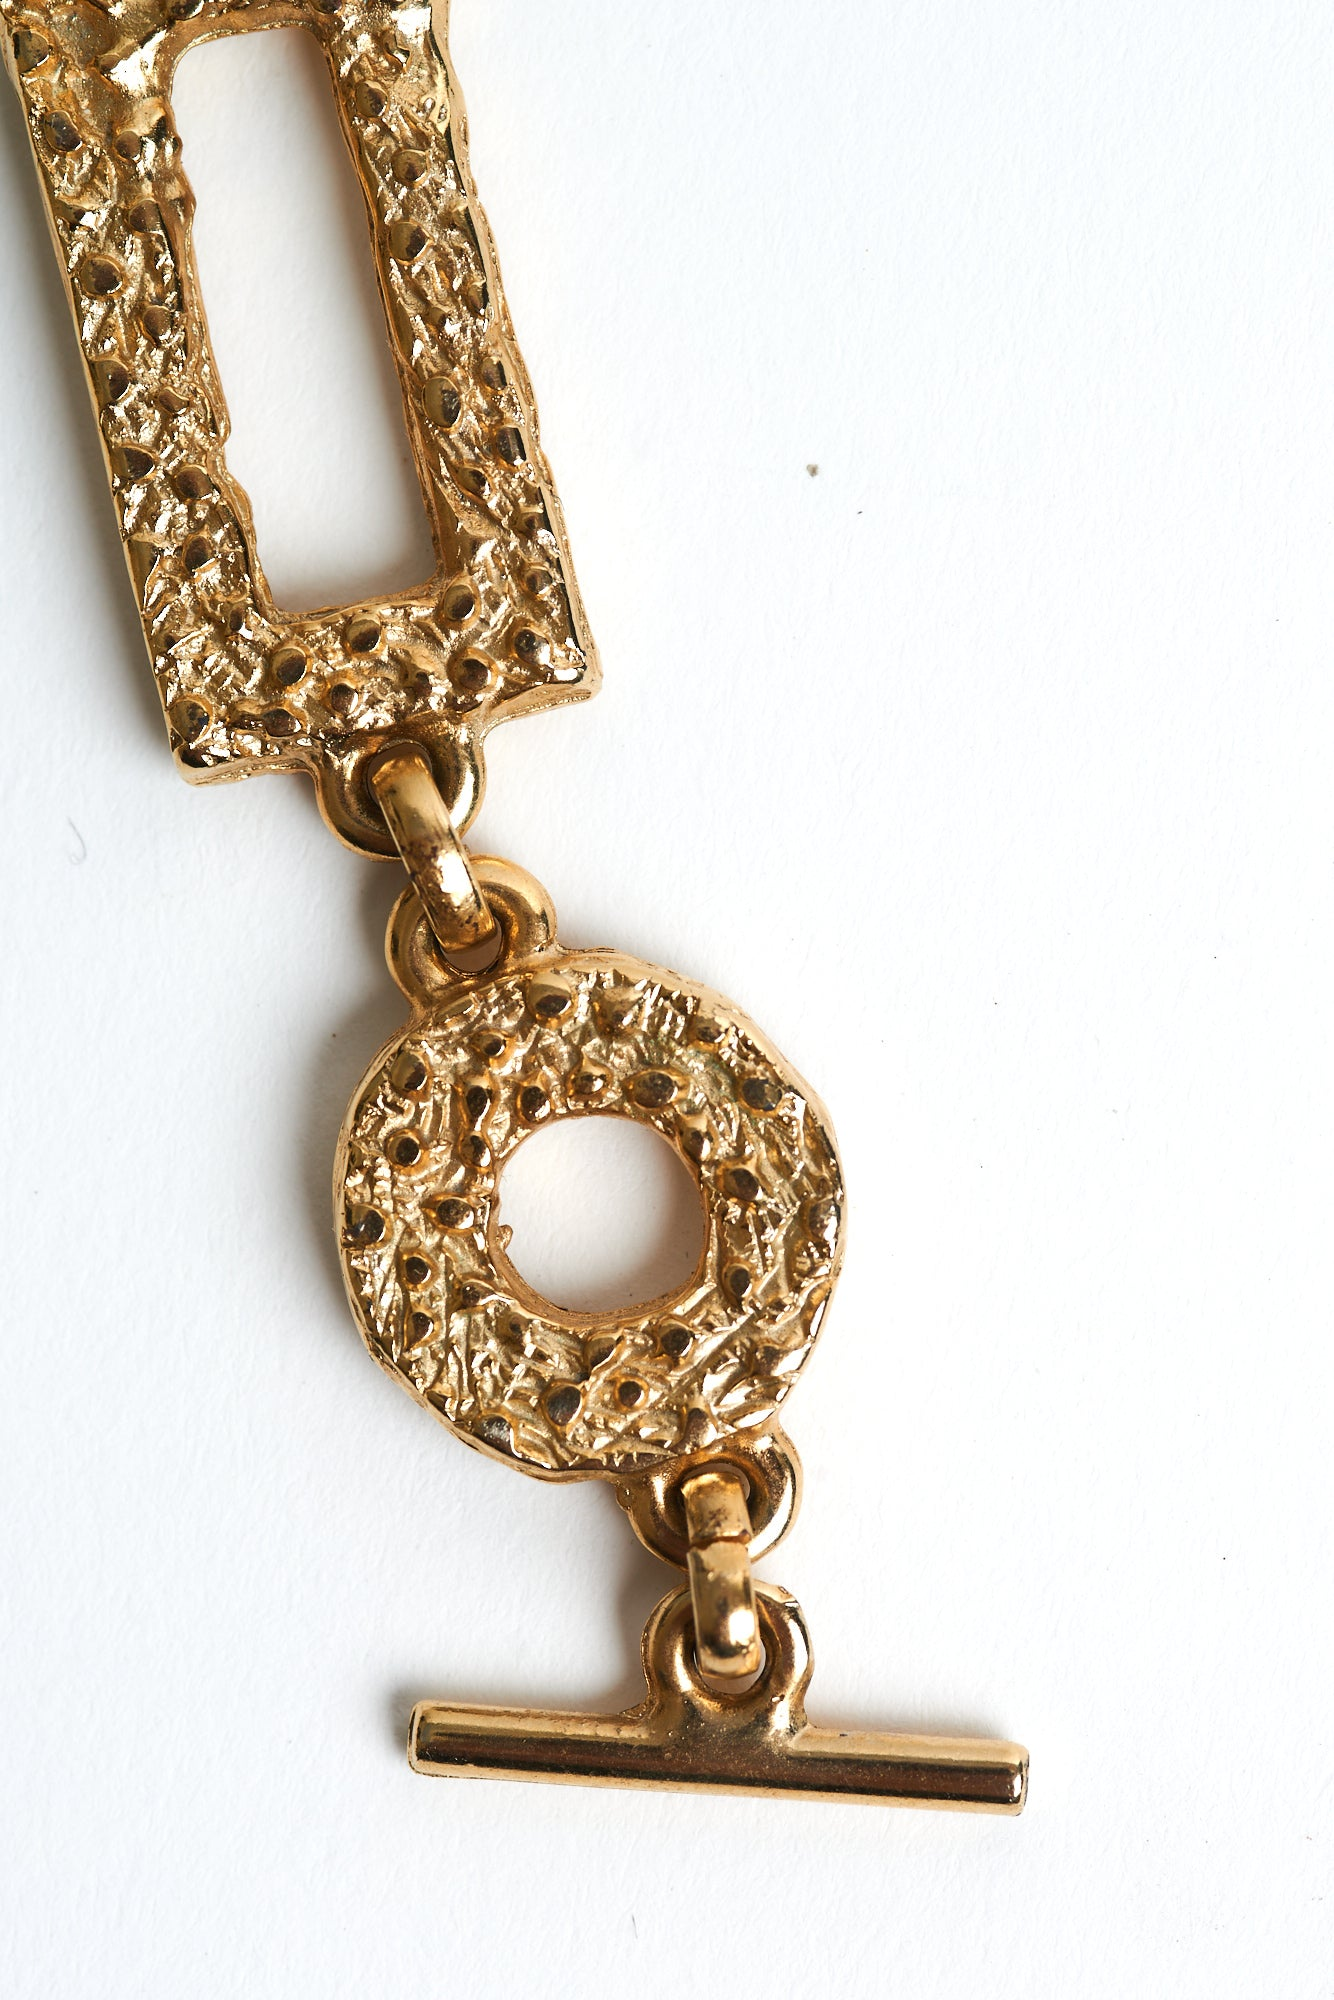 Pierre Cardin <br> 70s/80s gold plated chain link necklace/belt